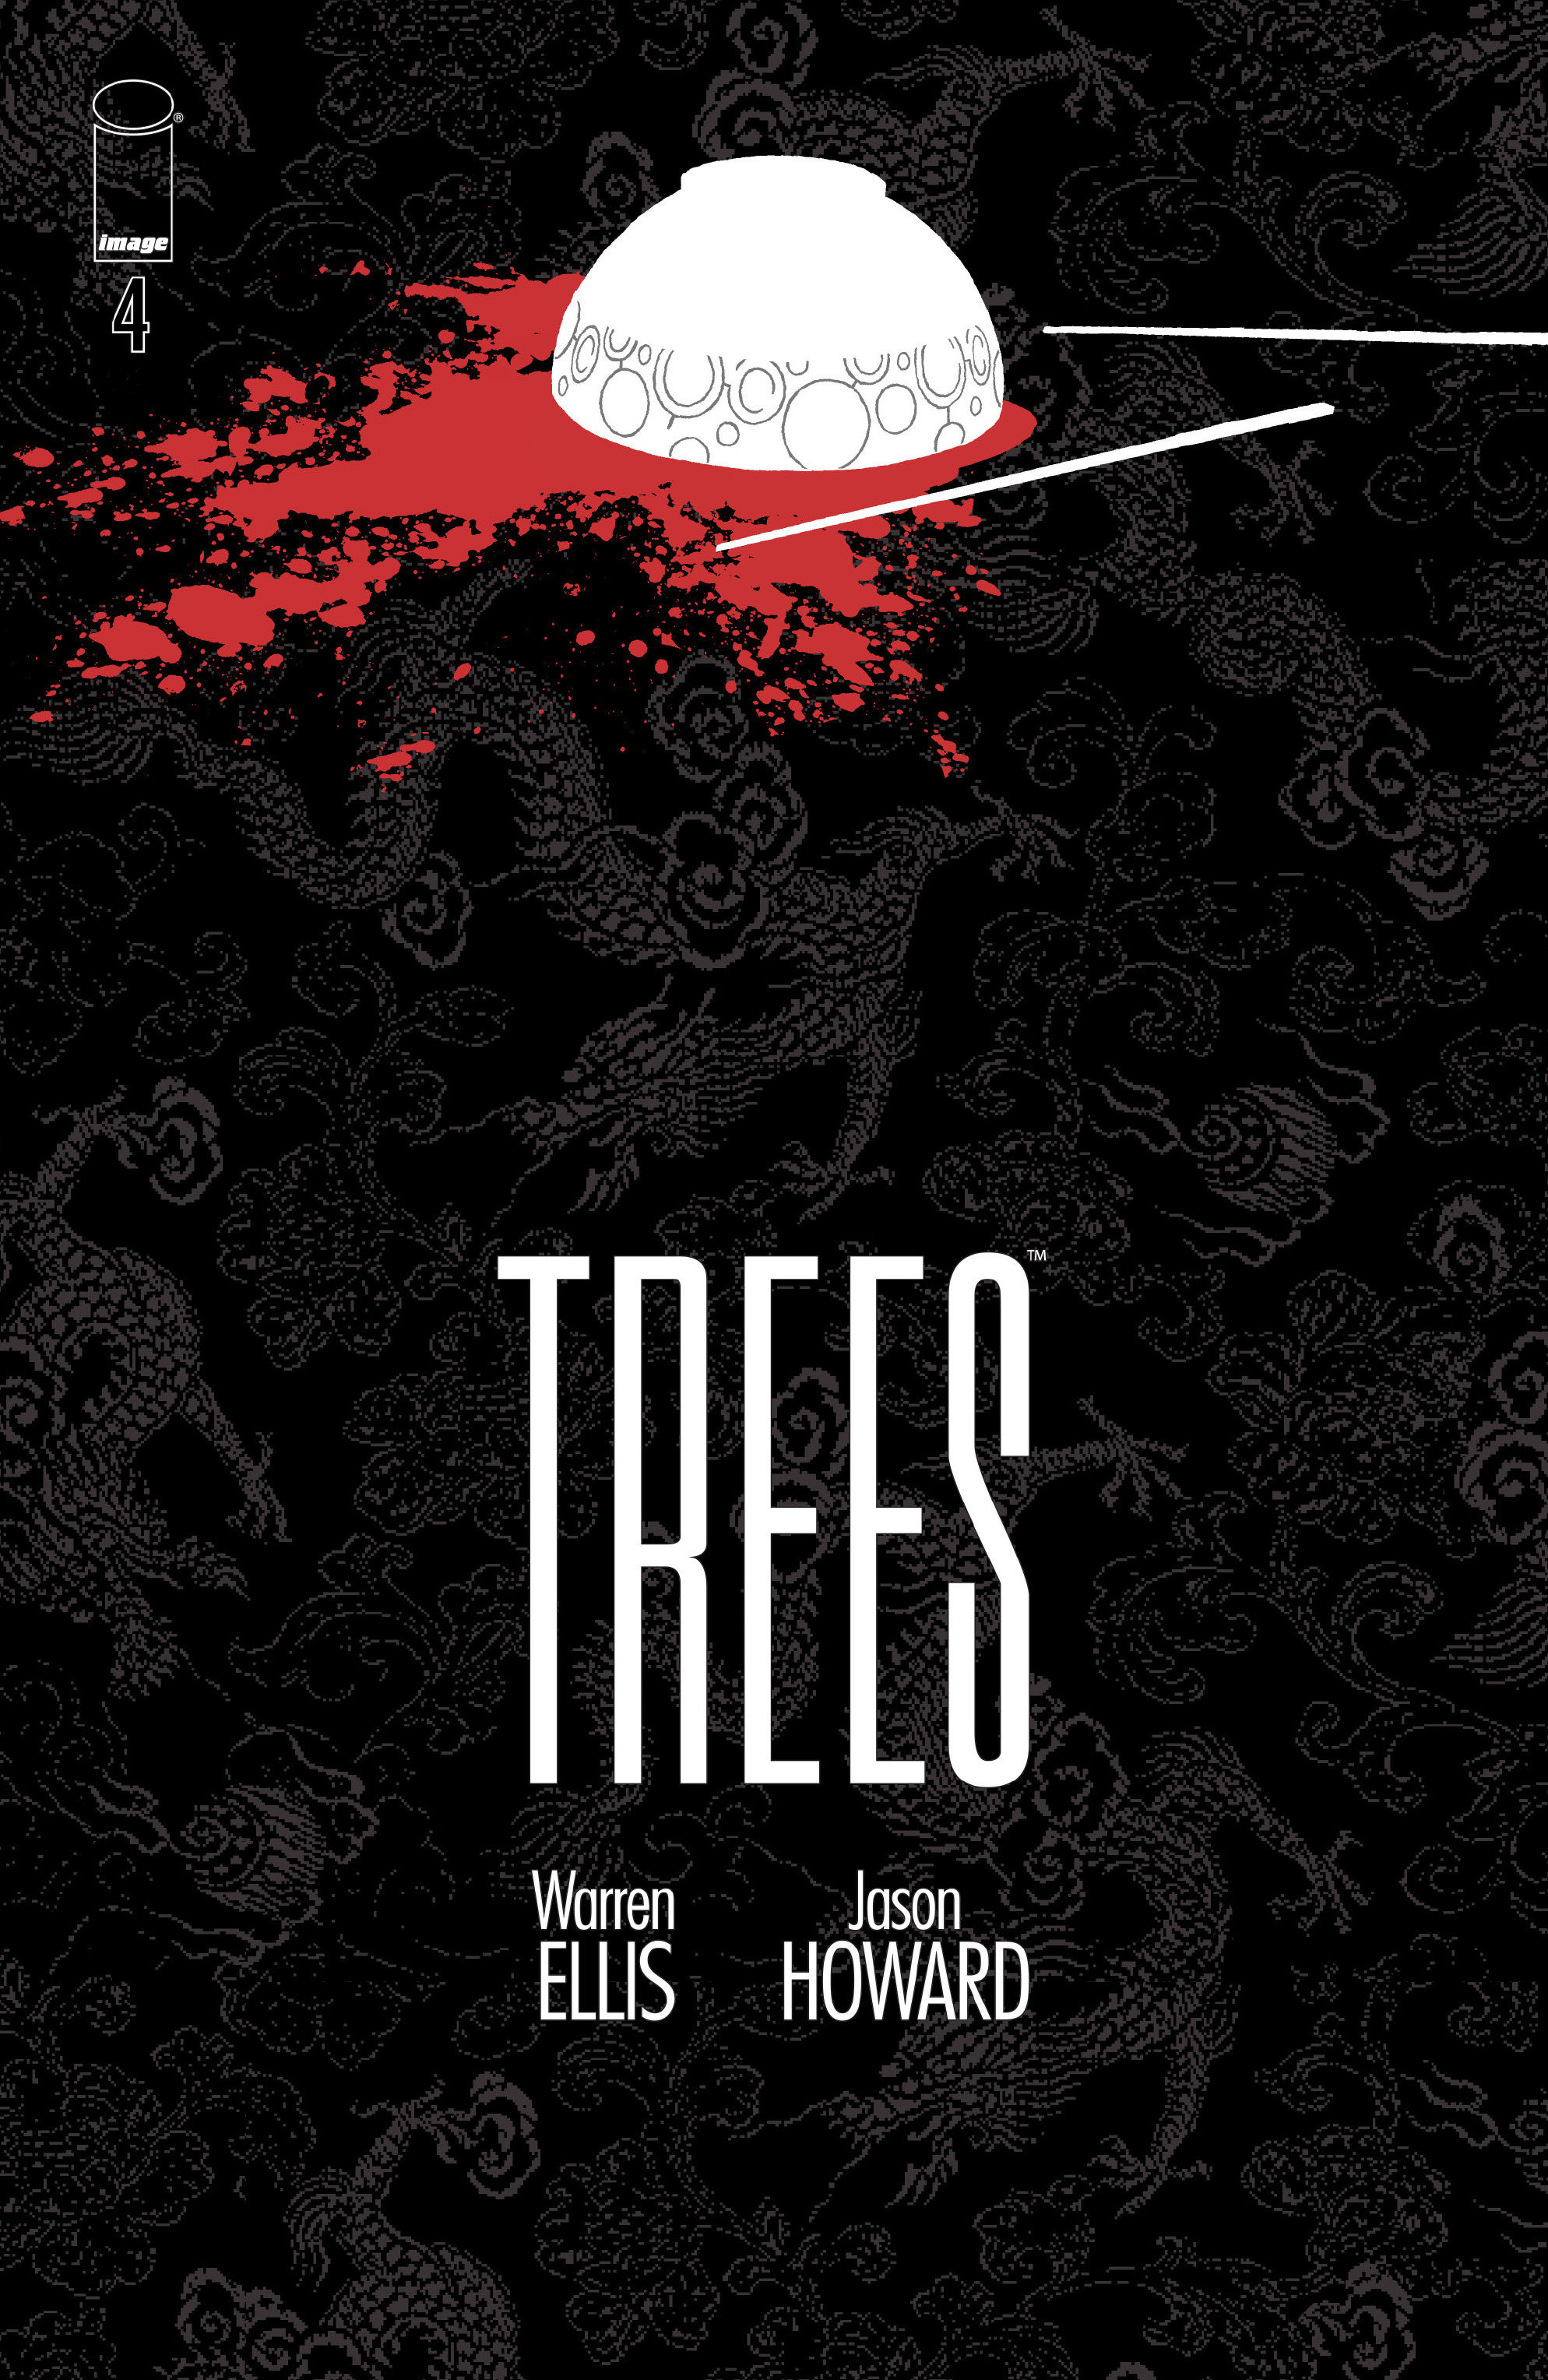 Read online Trees comic -  Issue #4 - 1